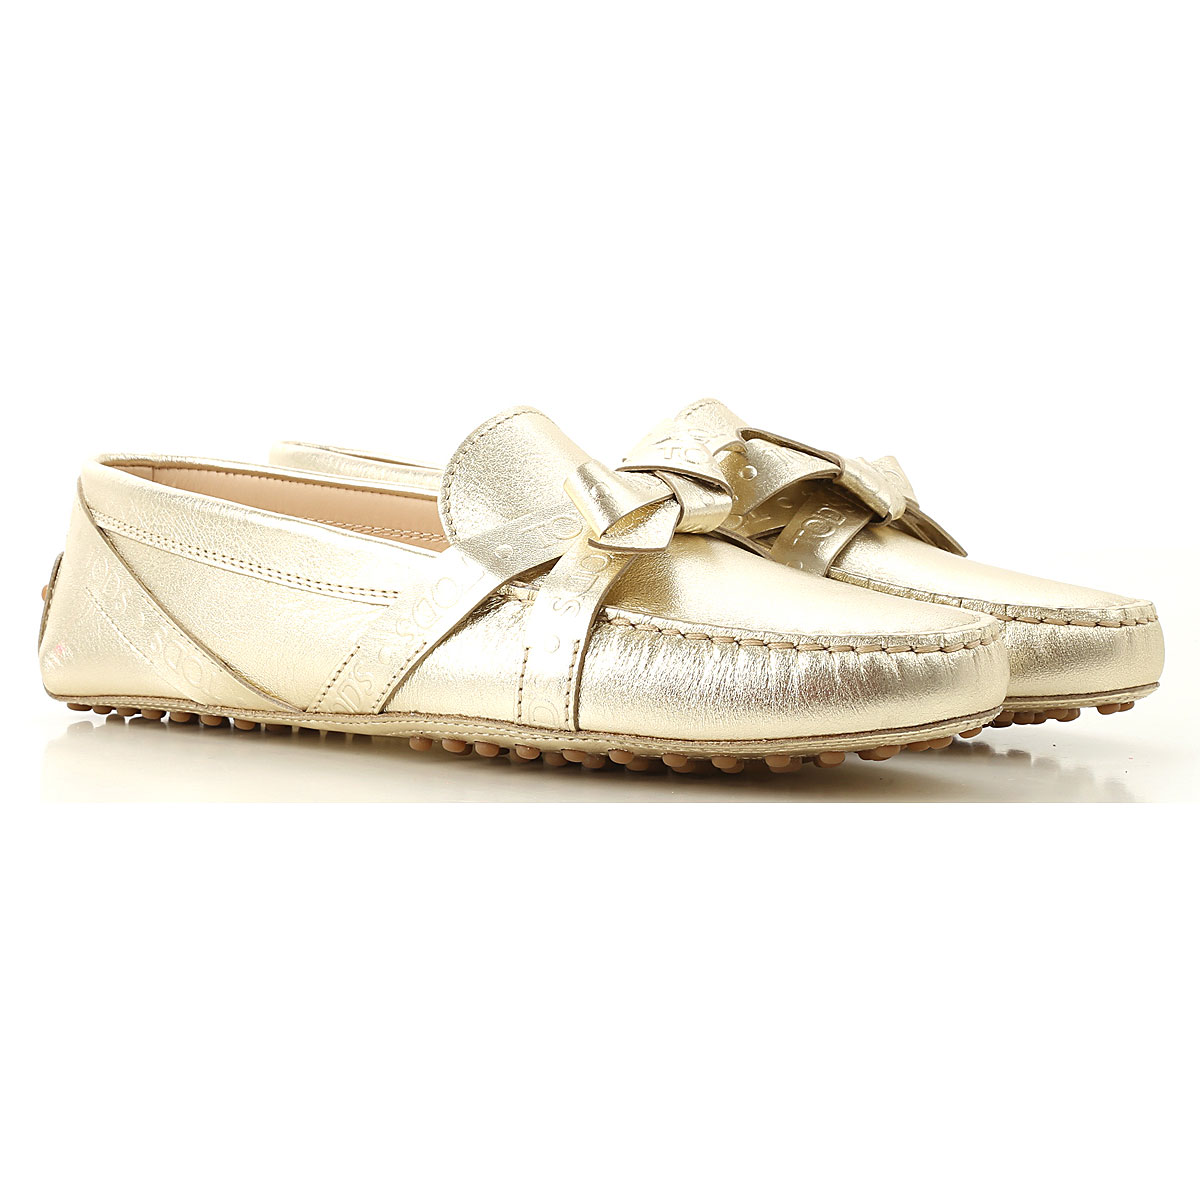 en soldes 28045 6405d Womens Shoes Tods, Style code: xxw00g0at40sv0g017--